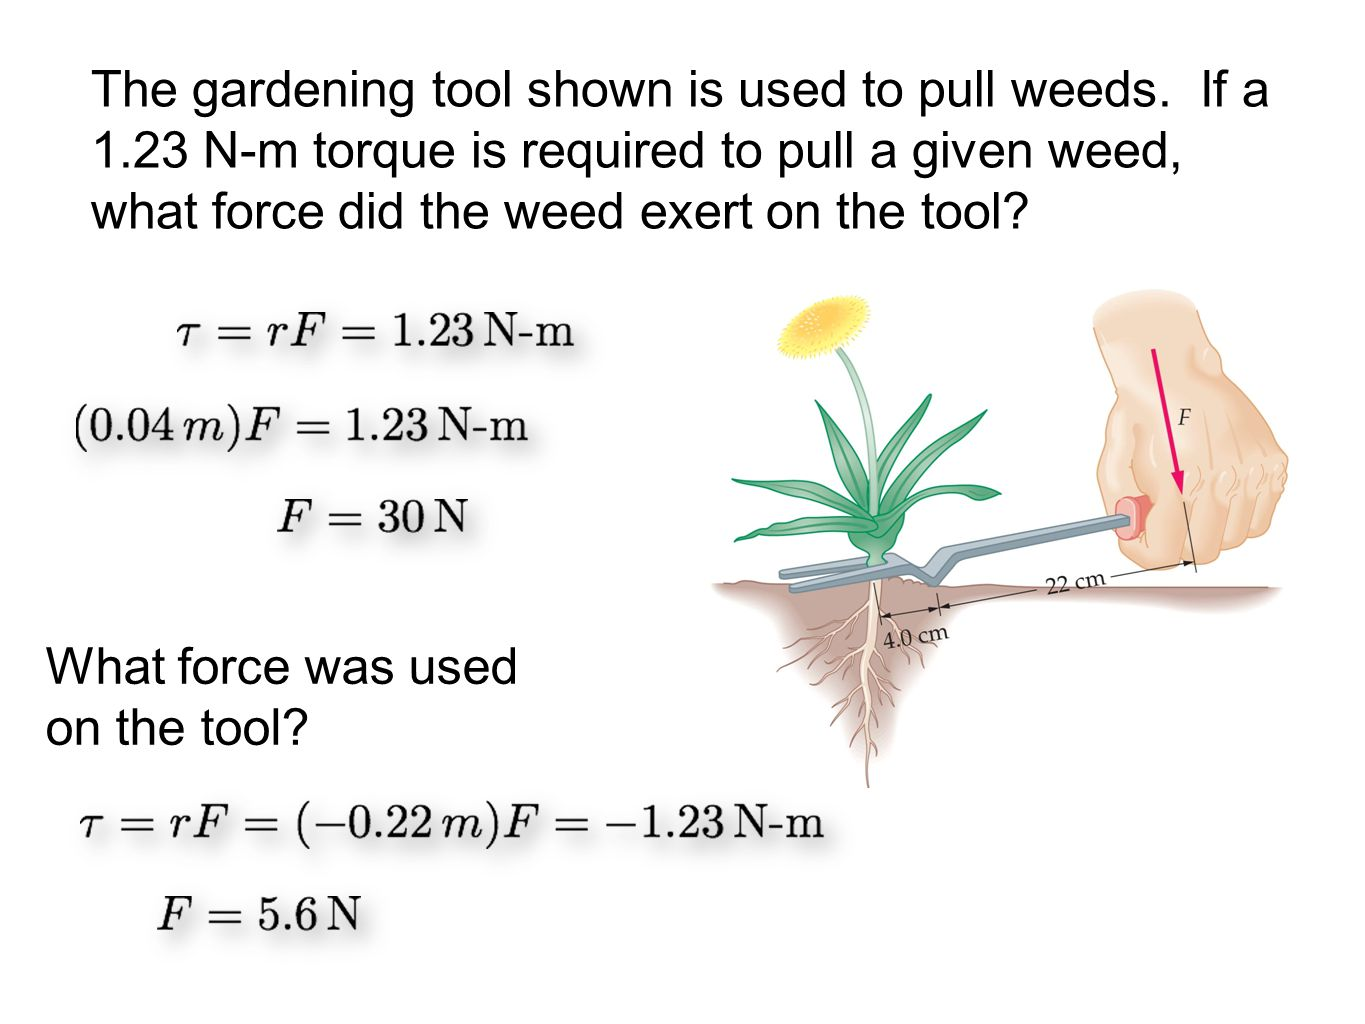 The gardening tool shown is used to pull weeds. If a 1